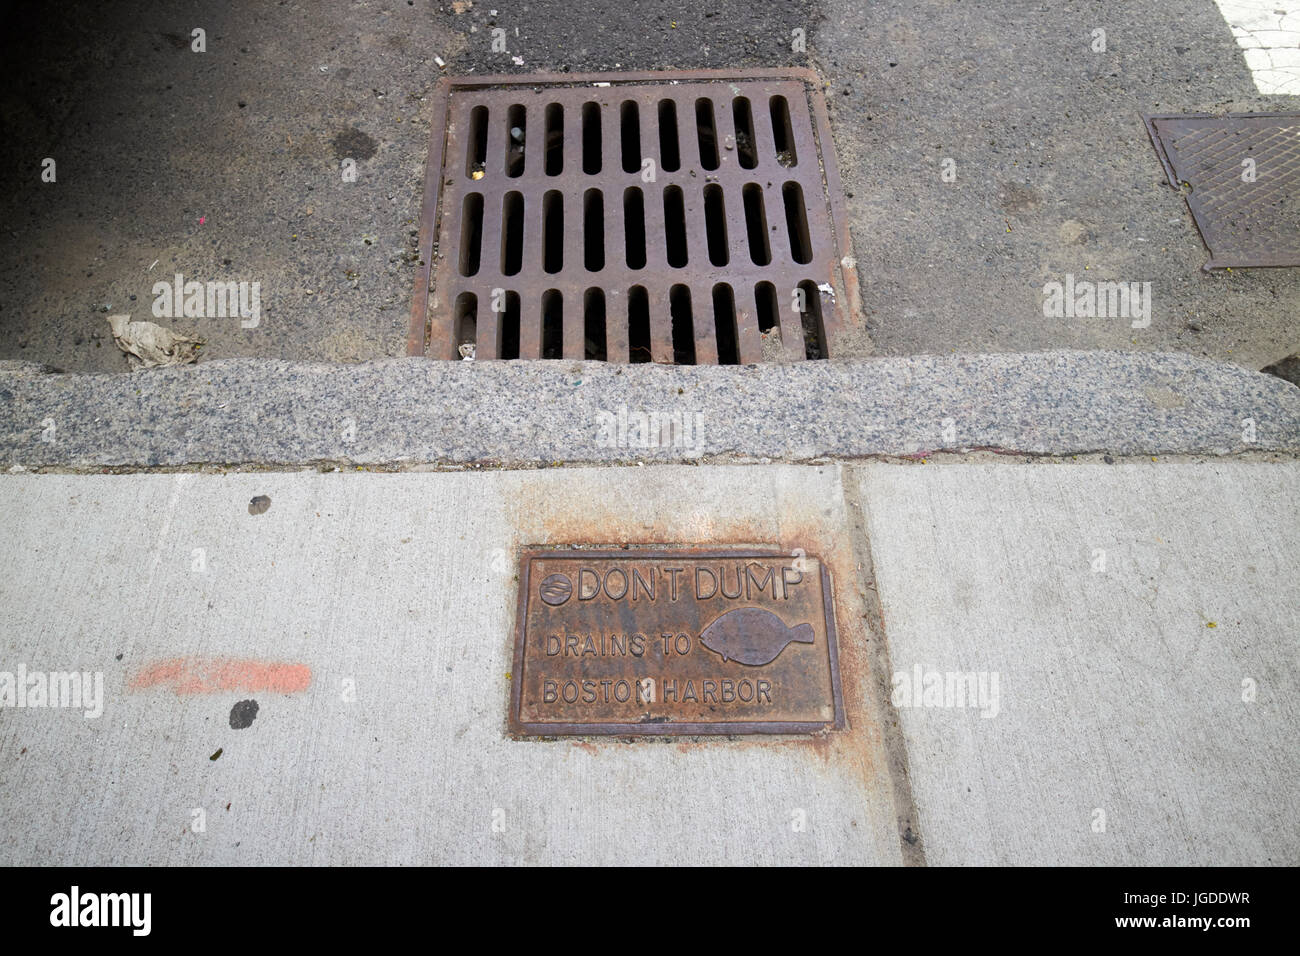 Storm Drainage Stock Photos Amp Storm Drainage Stock Images